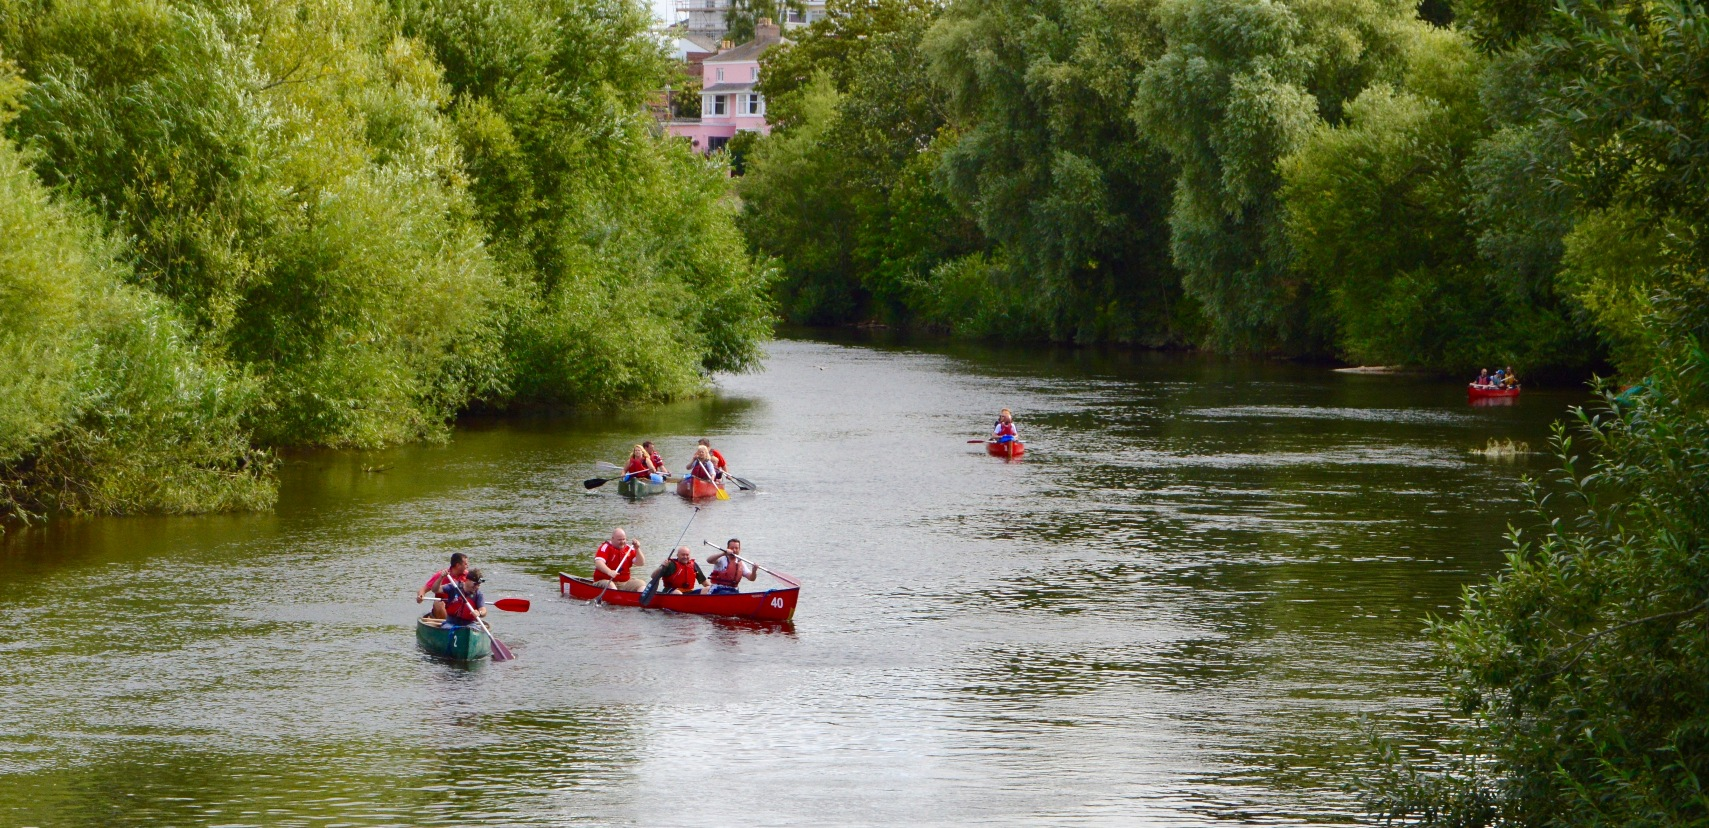 Canoeing on the Wye © Ross-on-Wye Town Council